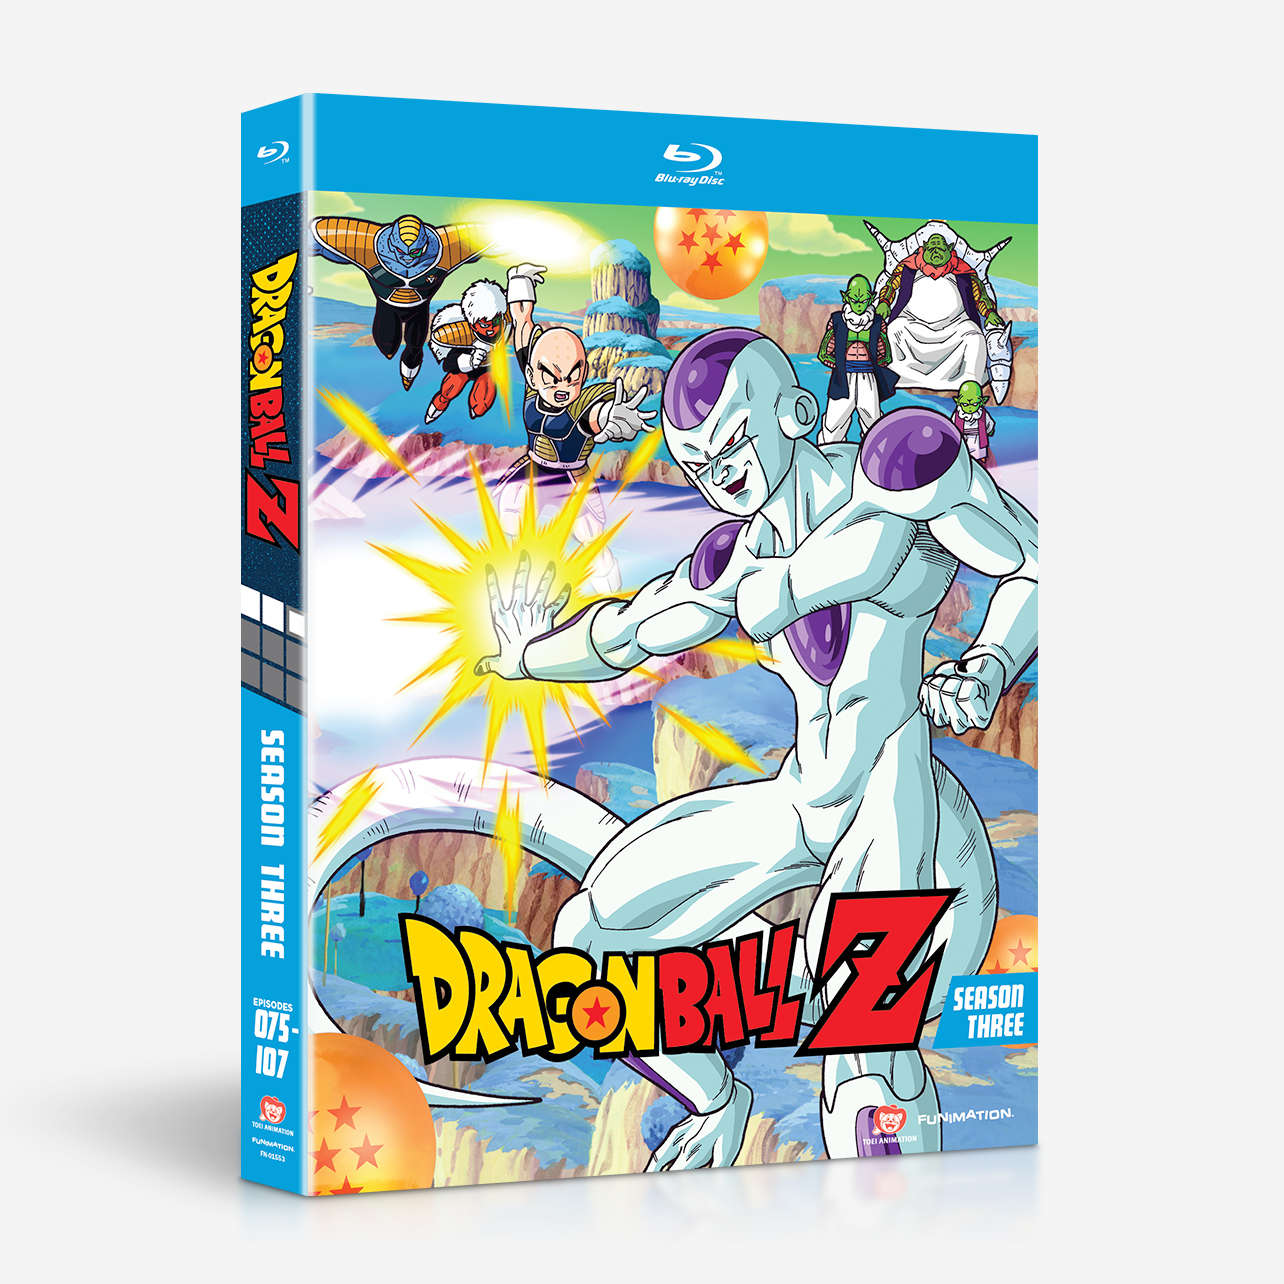 Dragon ball z season three home video thecheapjerseys Images